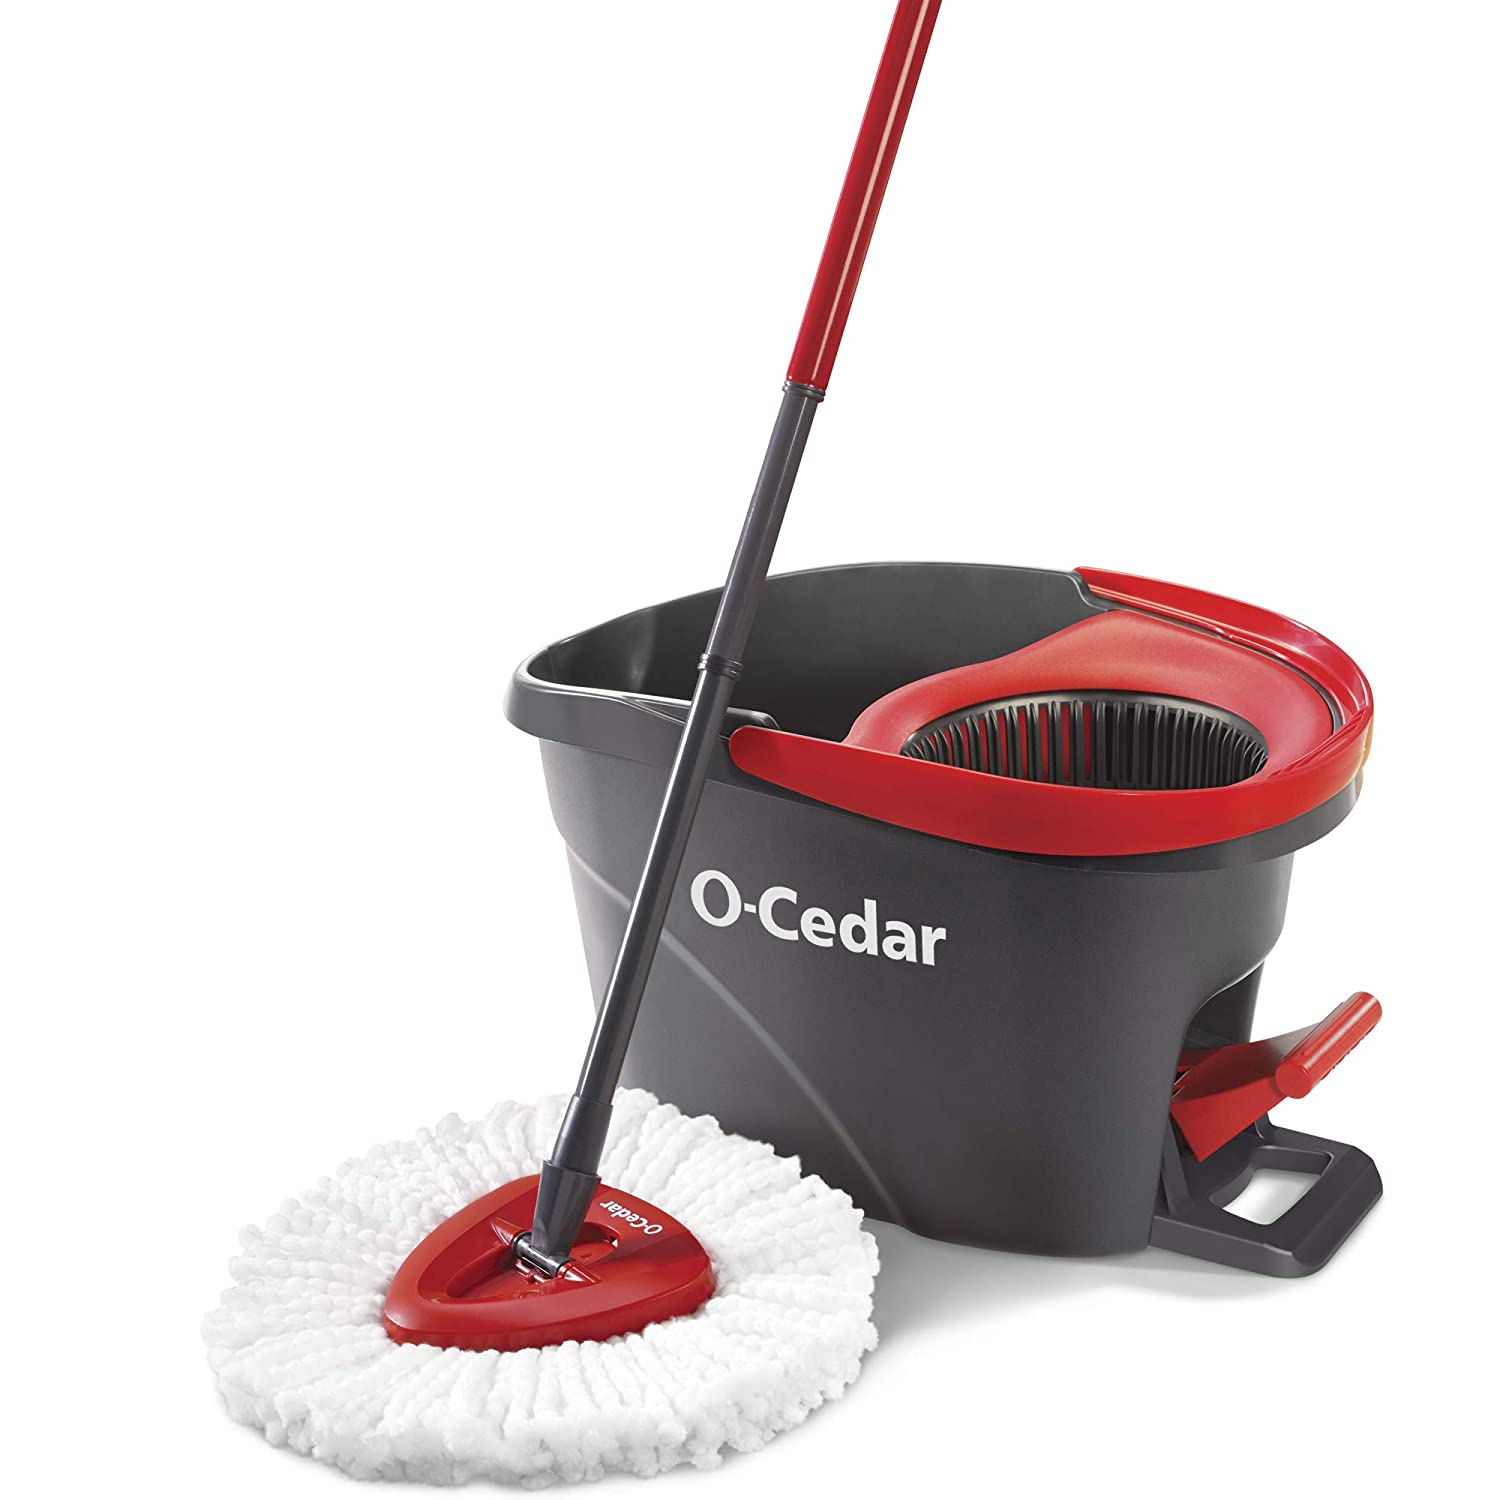 O-Cedar – Easy Wring Spin Mop and Bucket Floor Cleaning System